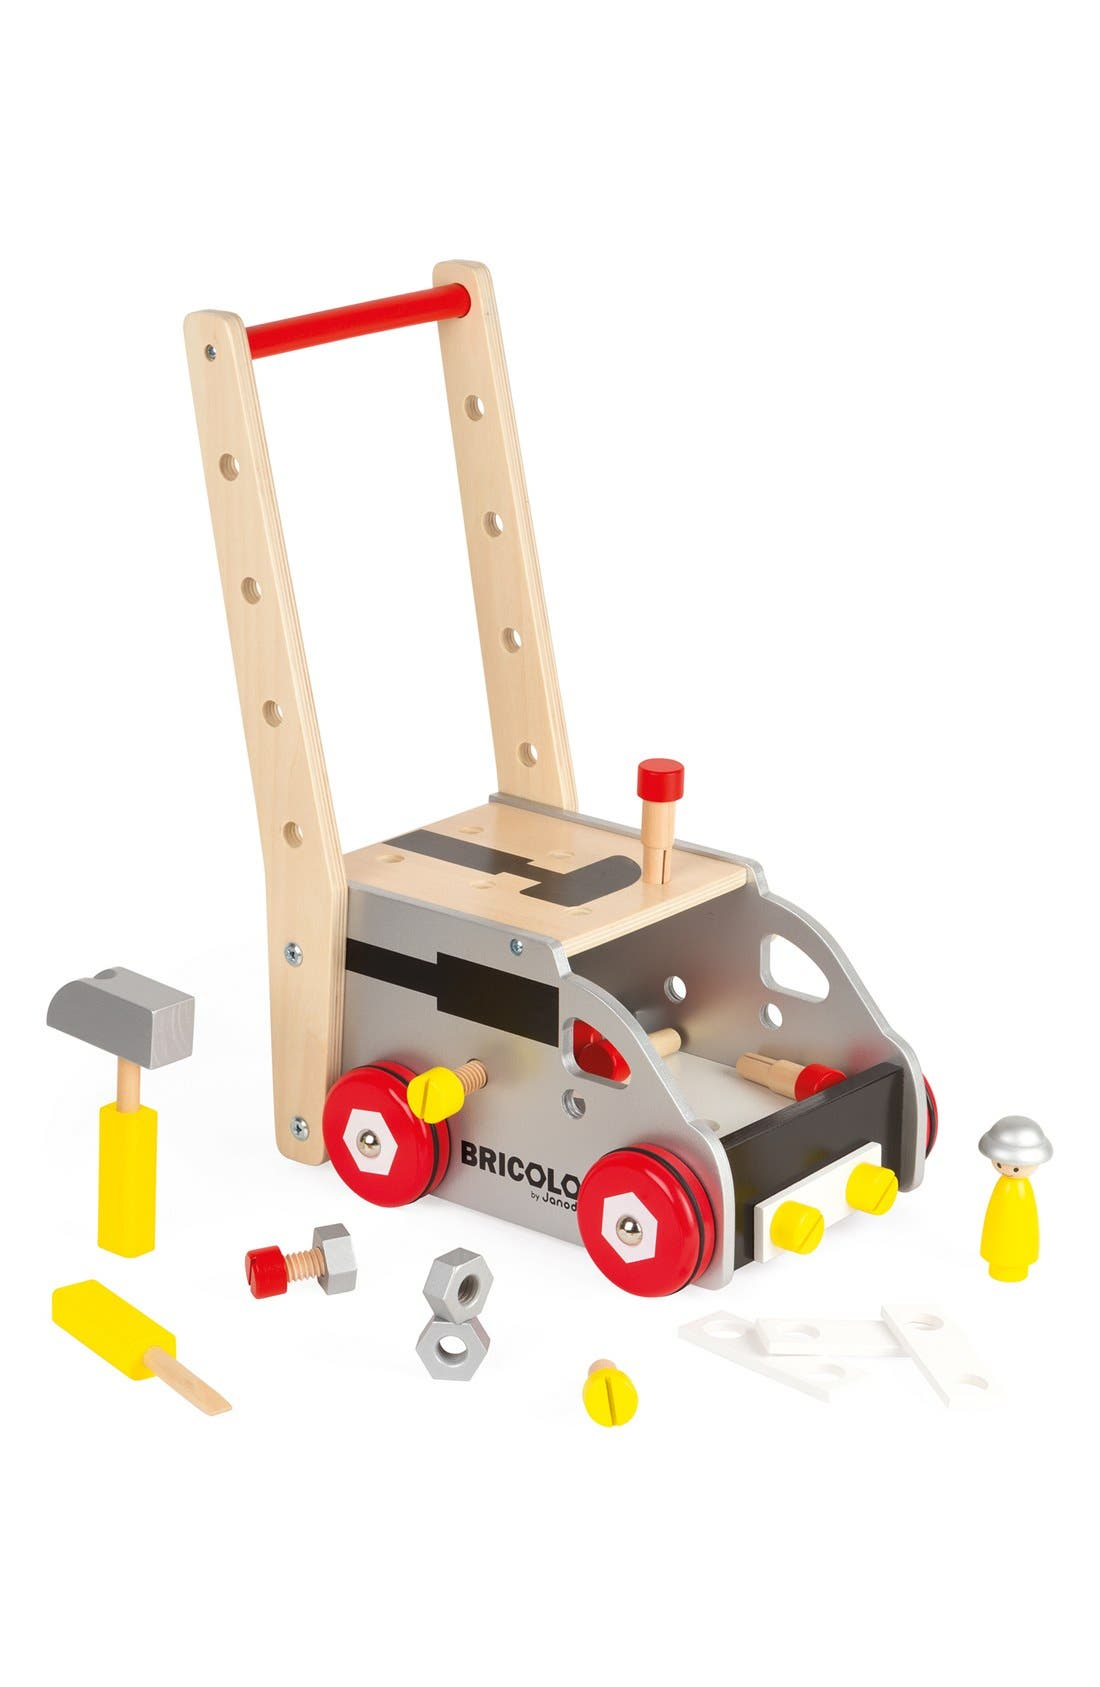 'Bricolo Redmaster Workbench and Trolley' Toy Set,                             Alternate thumbnail 2, color,                             MULTI